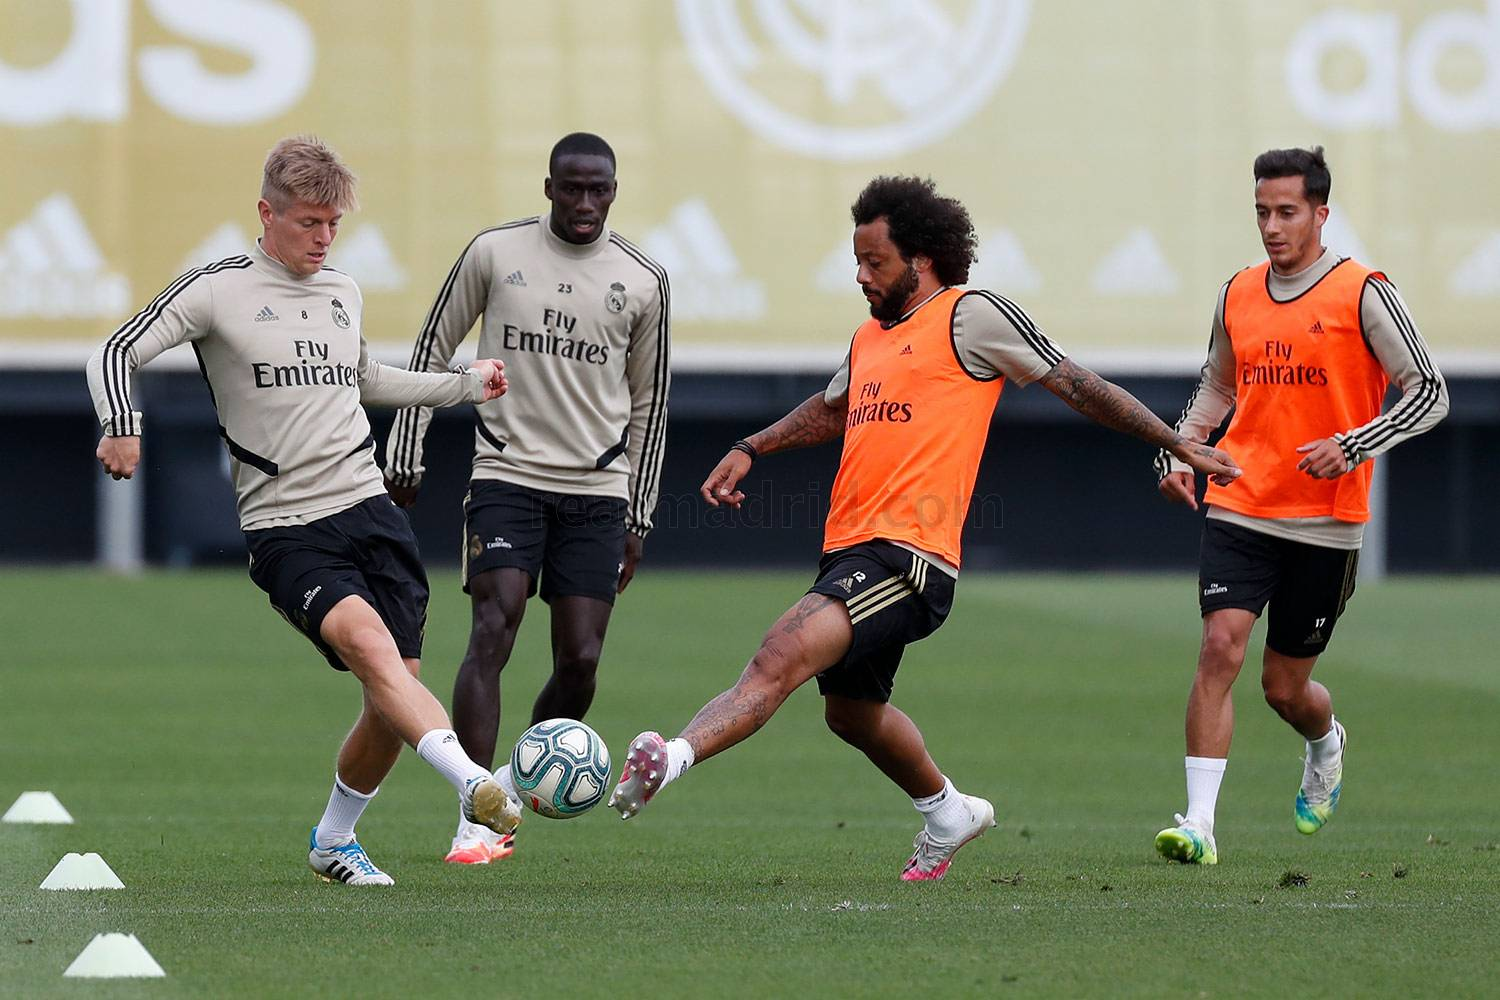 Real Madrid - Entrenamiento del Real Madrid  - 04-06-2020